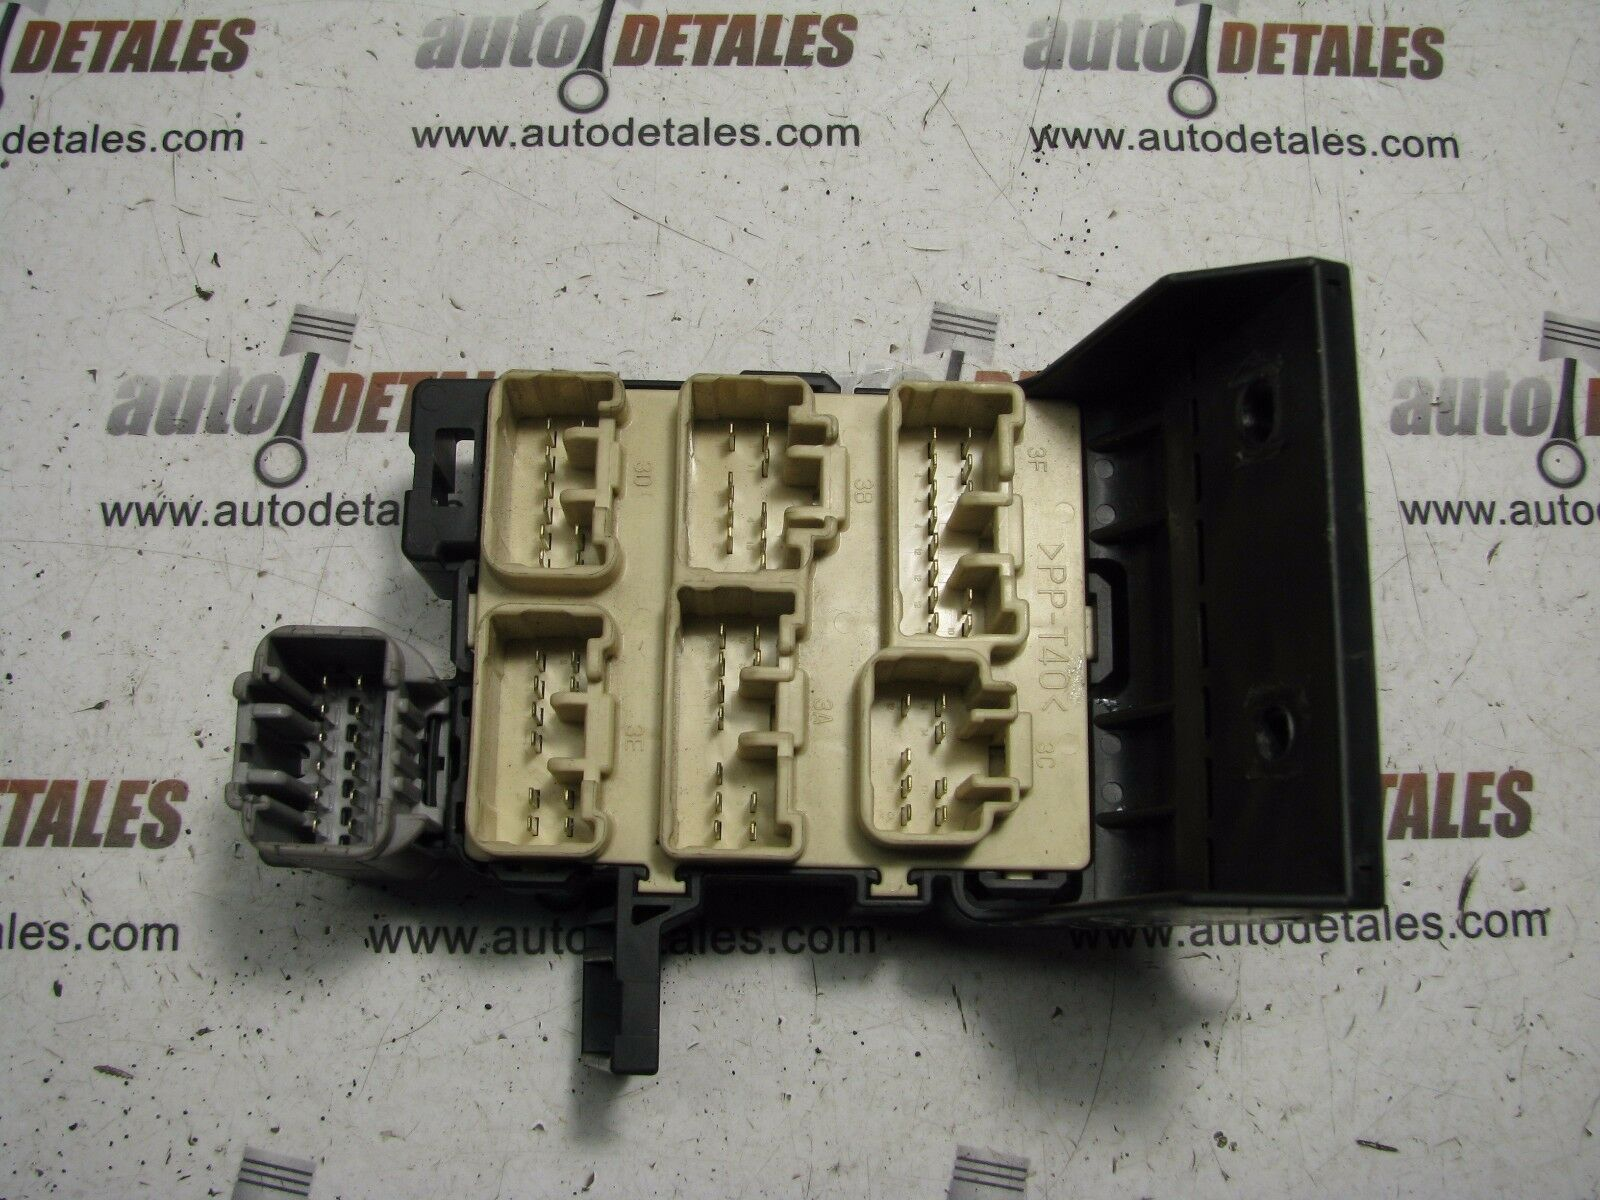 Toyota Corolla Verso 18 Petrol Fuse Relay Box Unit 82734 05020 Used Automotive And 1 Of 5only Available